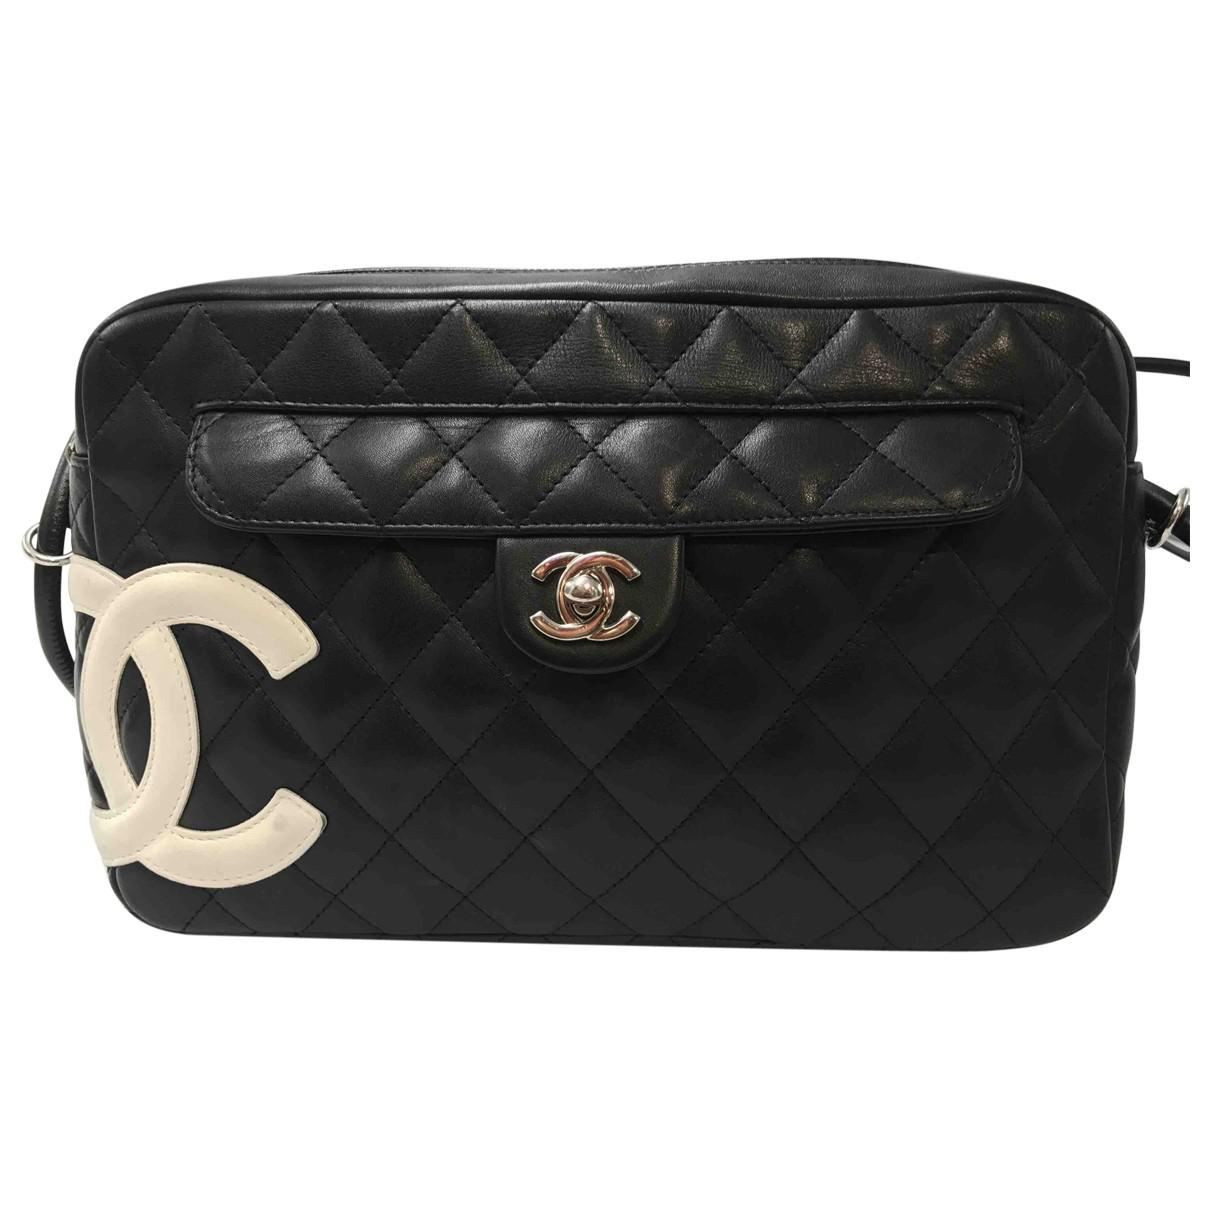 Pre-owned - Leather crossbody bag Chanel DSMAkY3